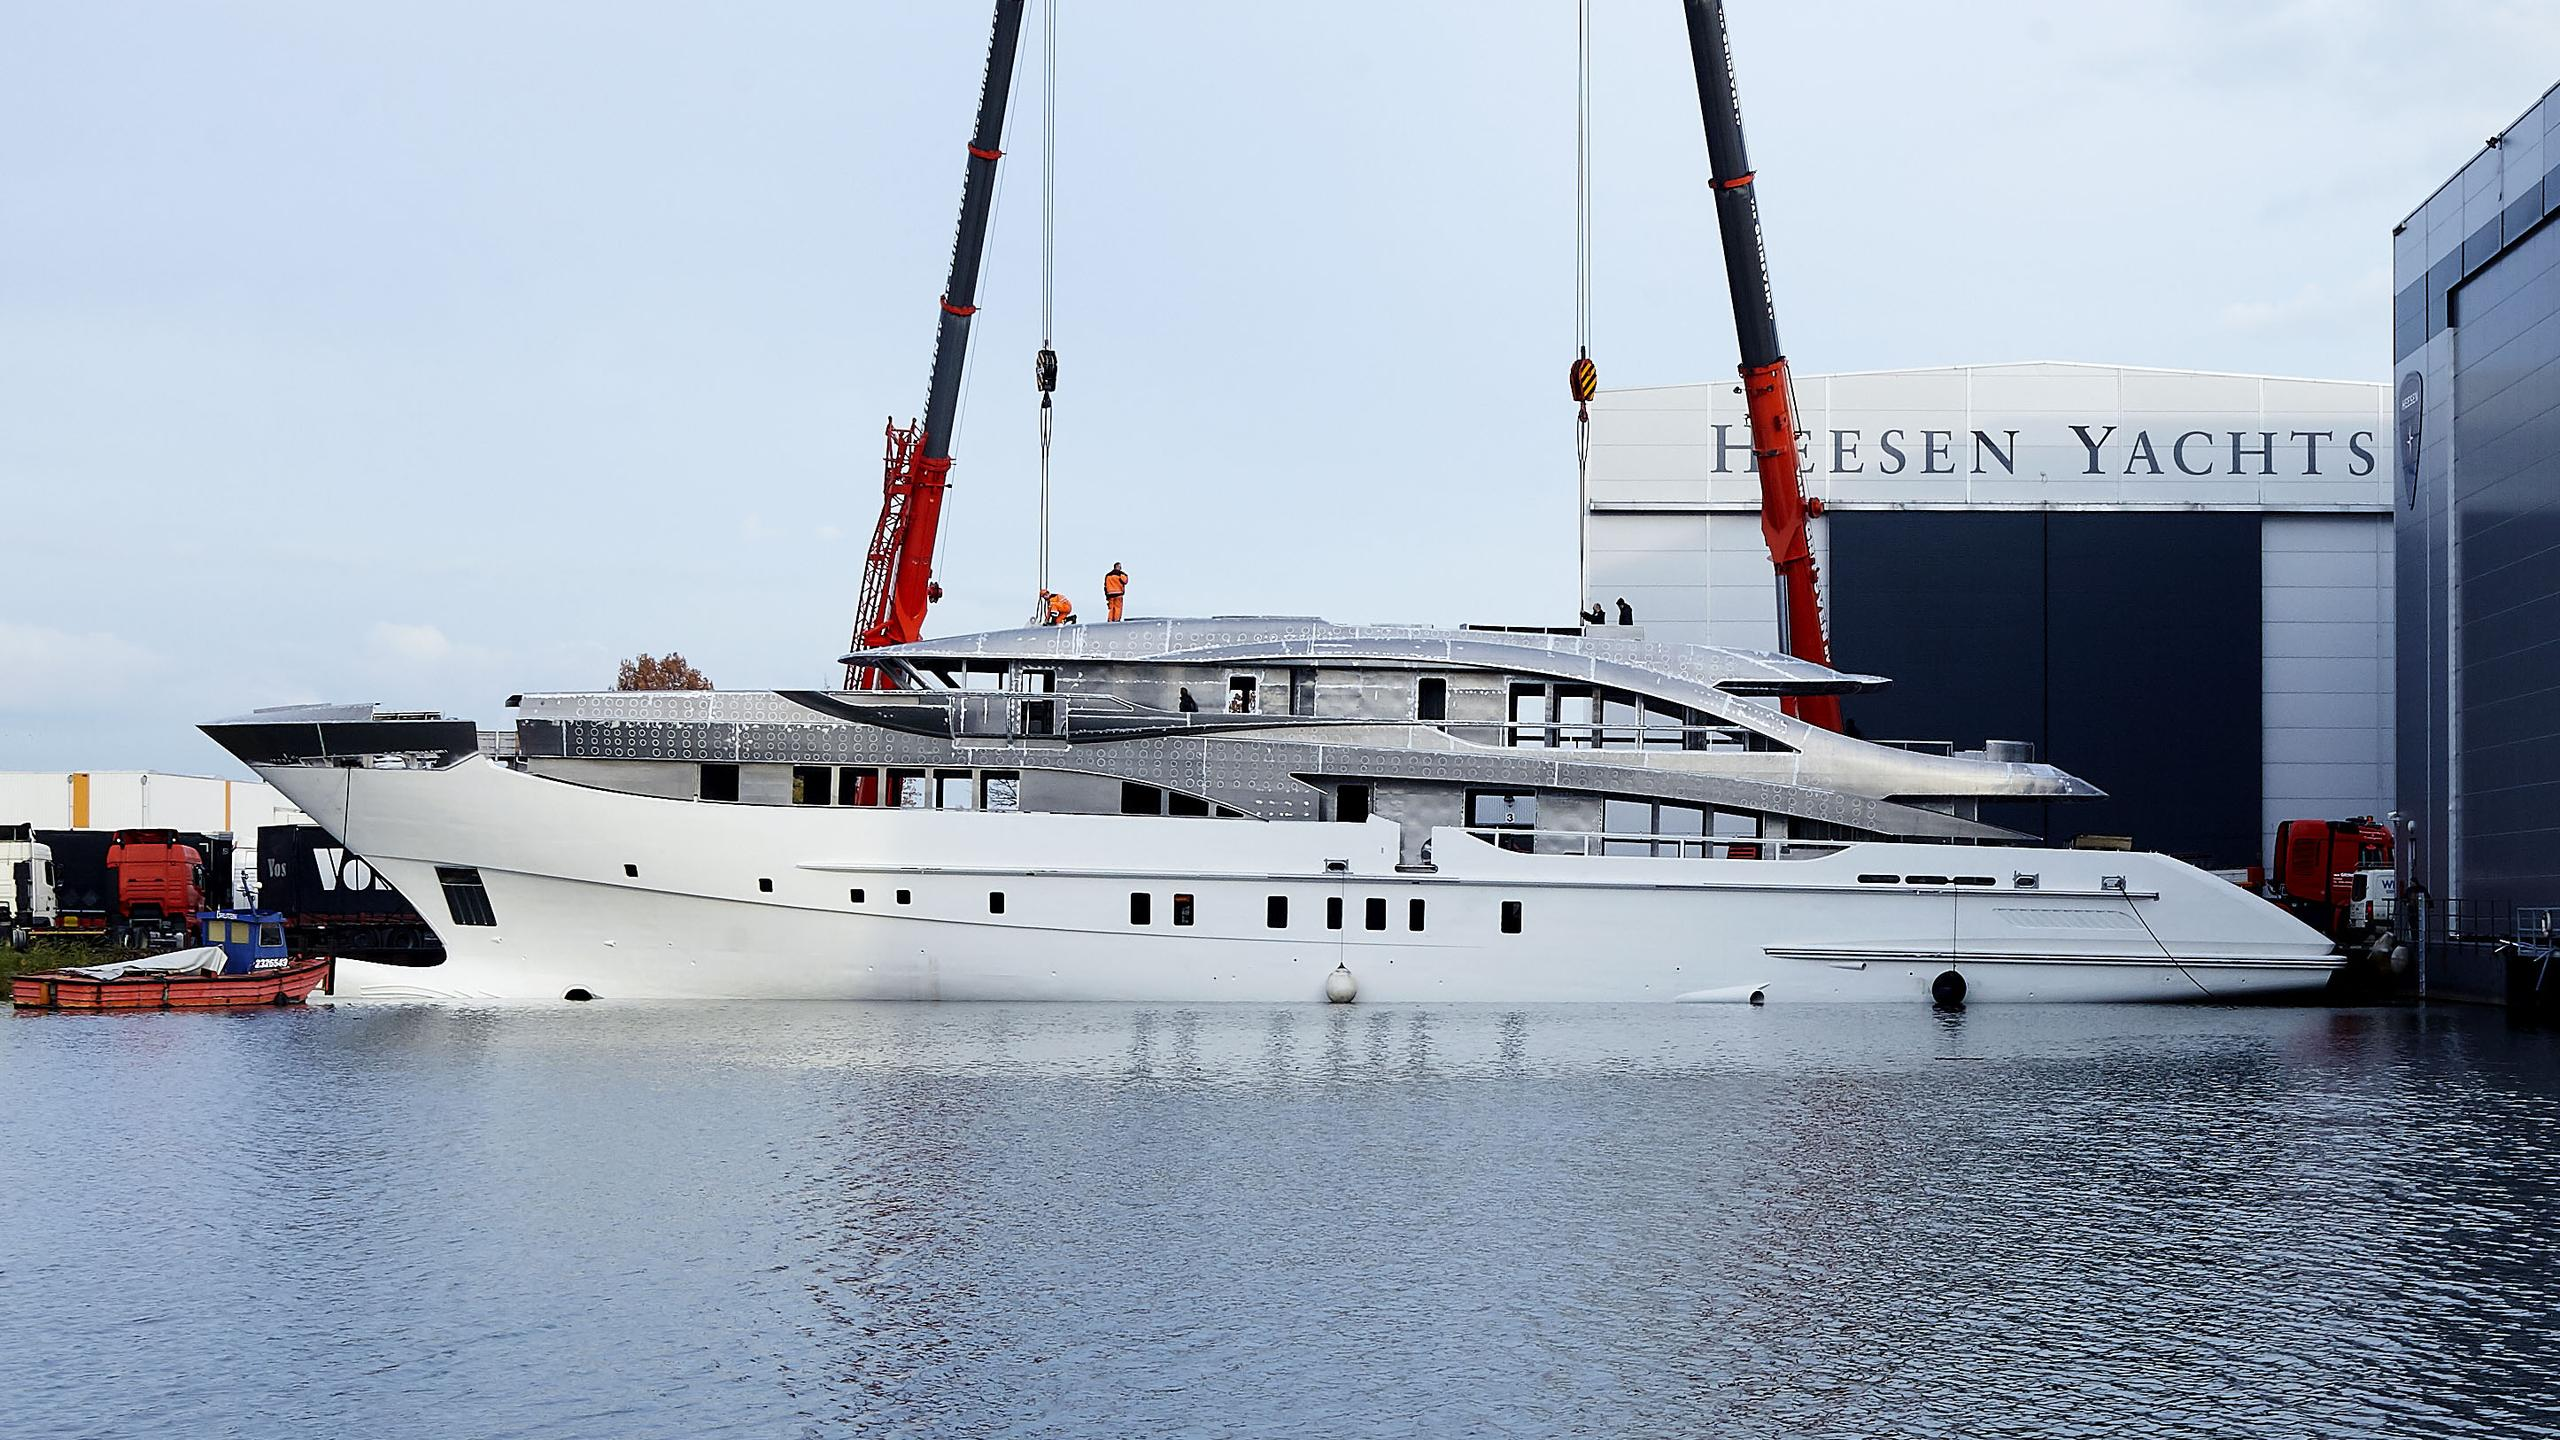 neptune hull 18556 motoryacht heesen yachts 56m 2019 under construction